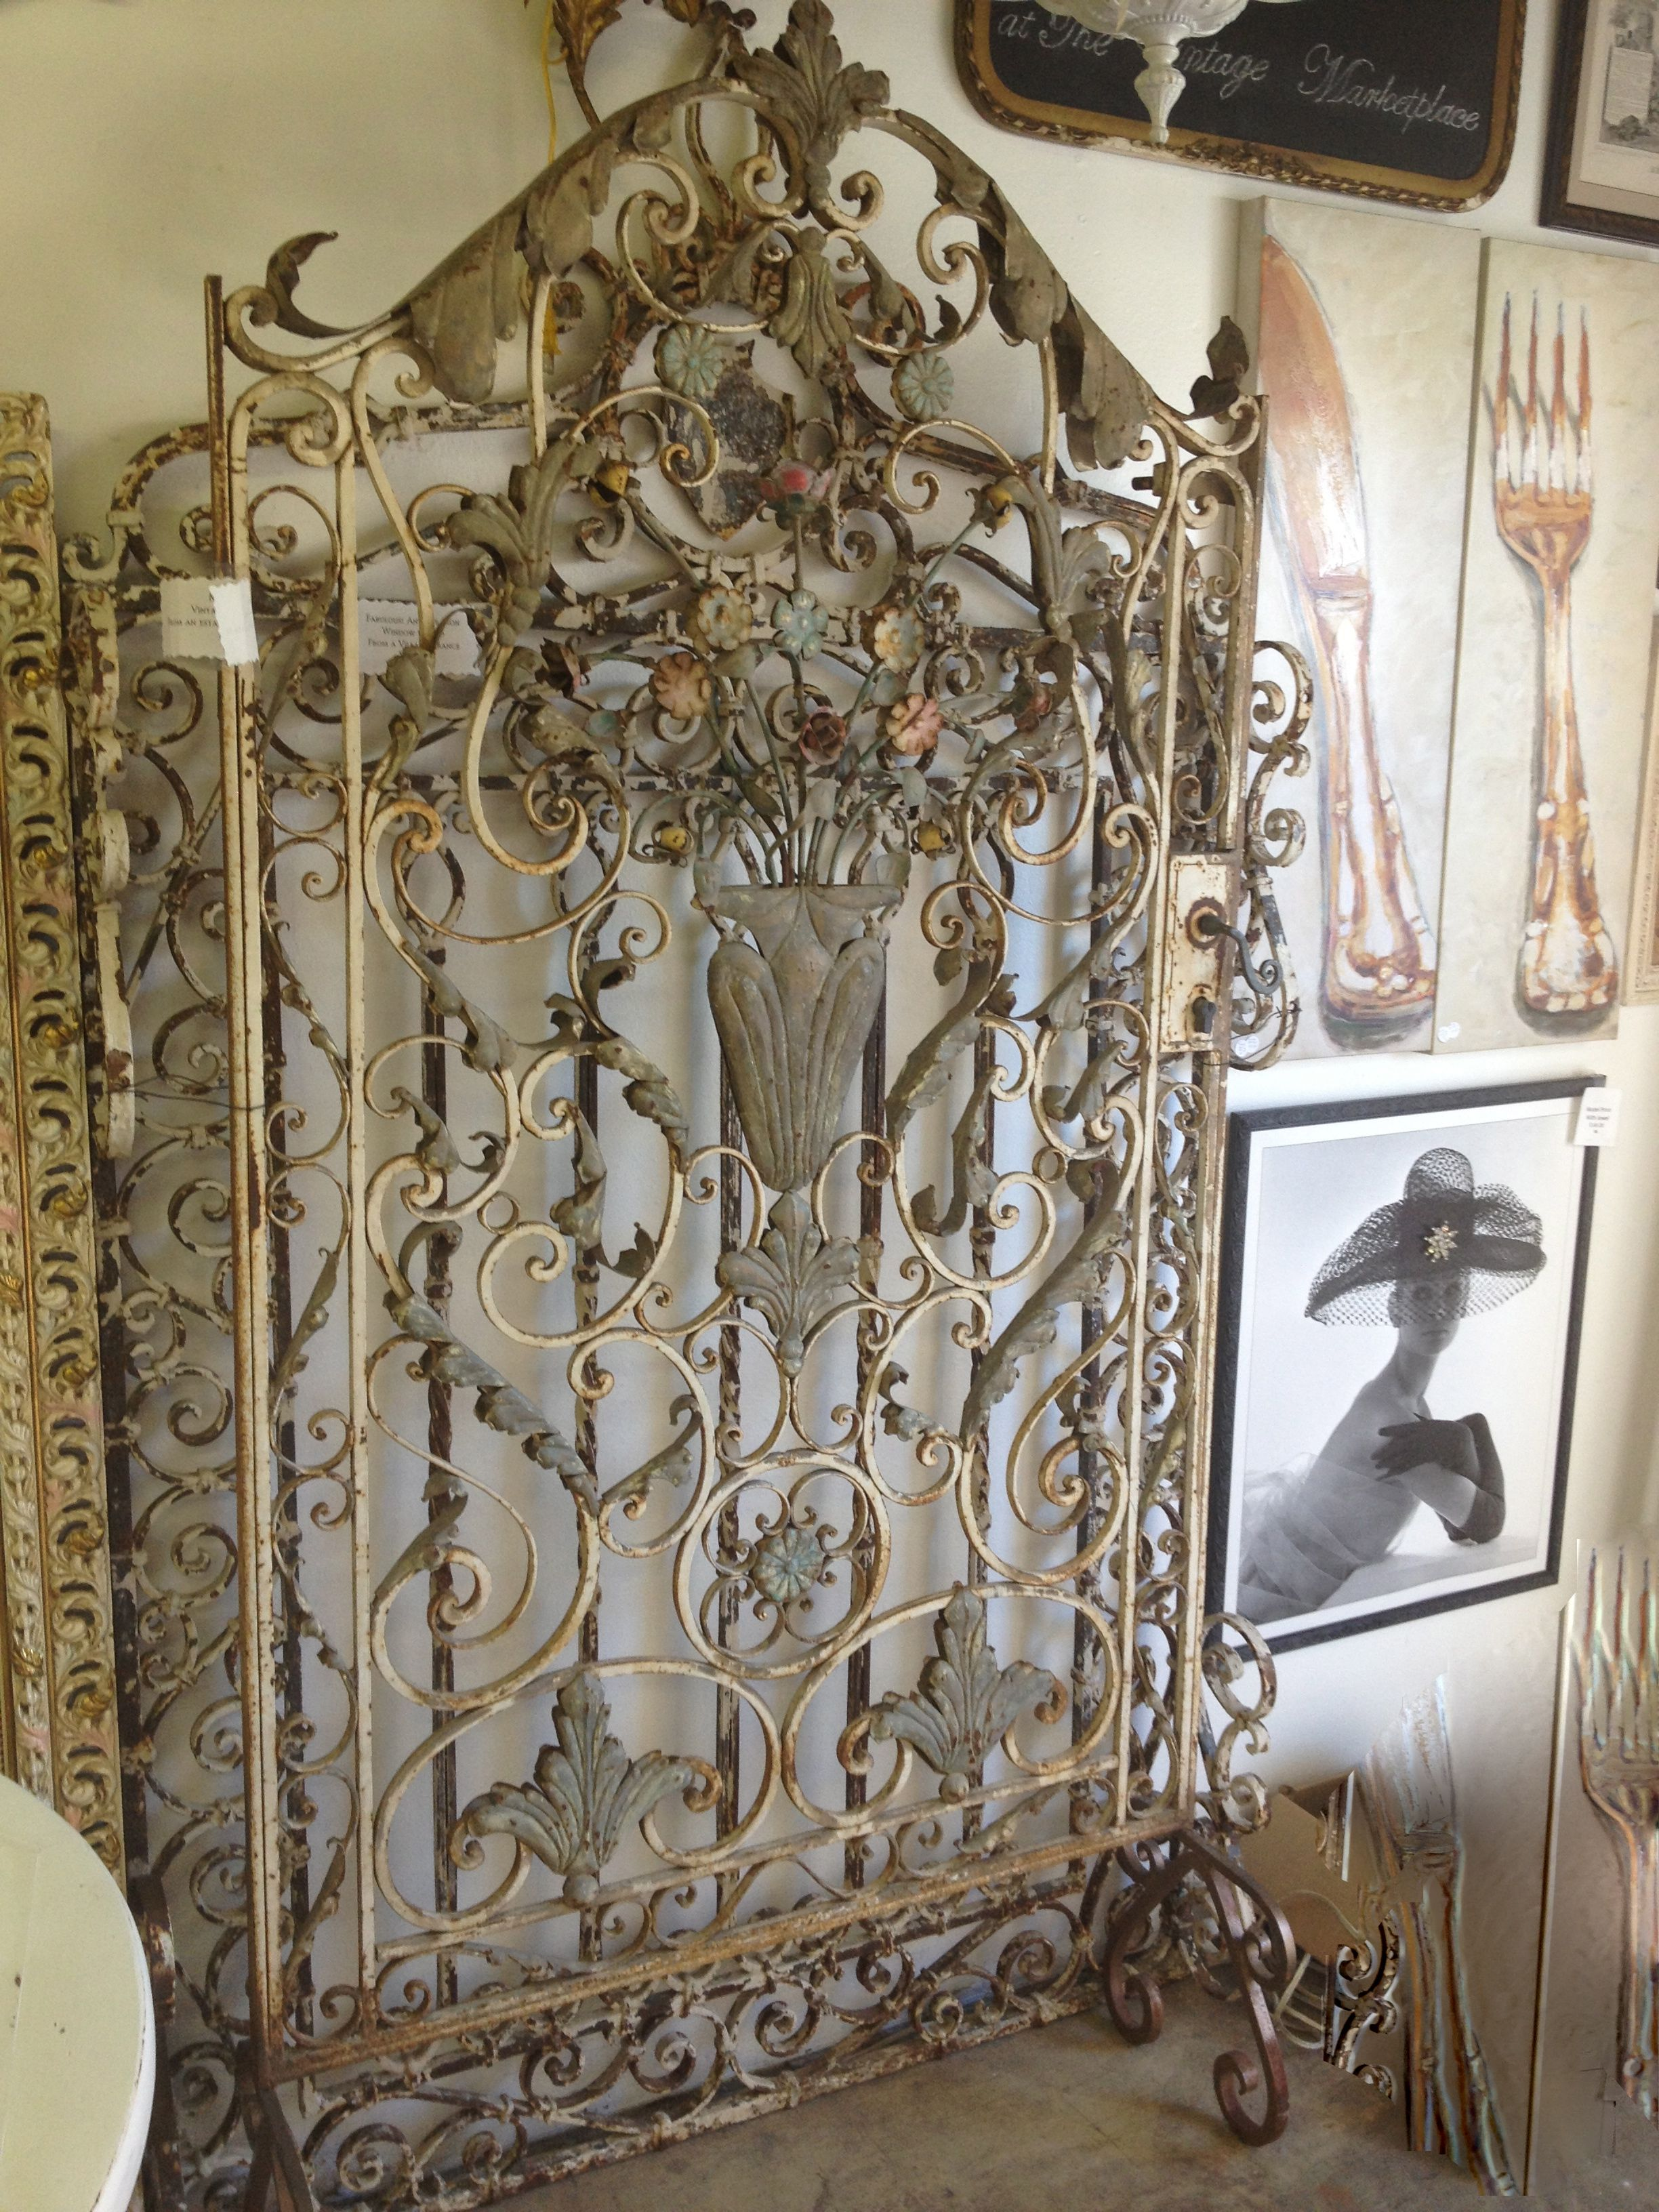 Pin antique garden gates in wrought iron an art nouveau style on - French Iron Gate Sold